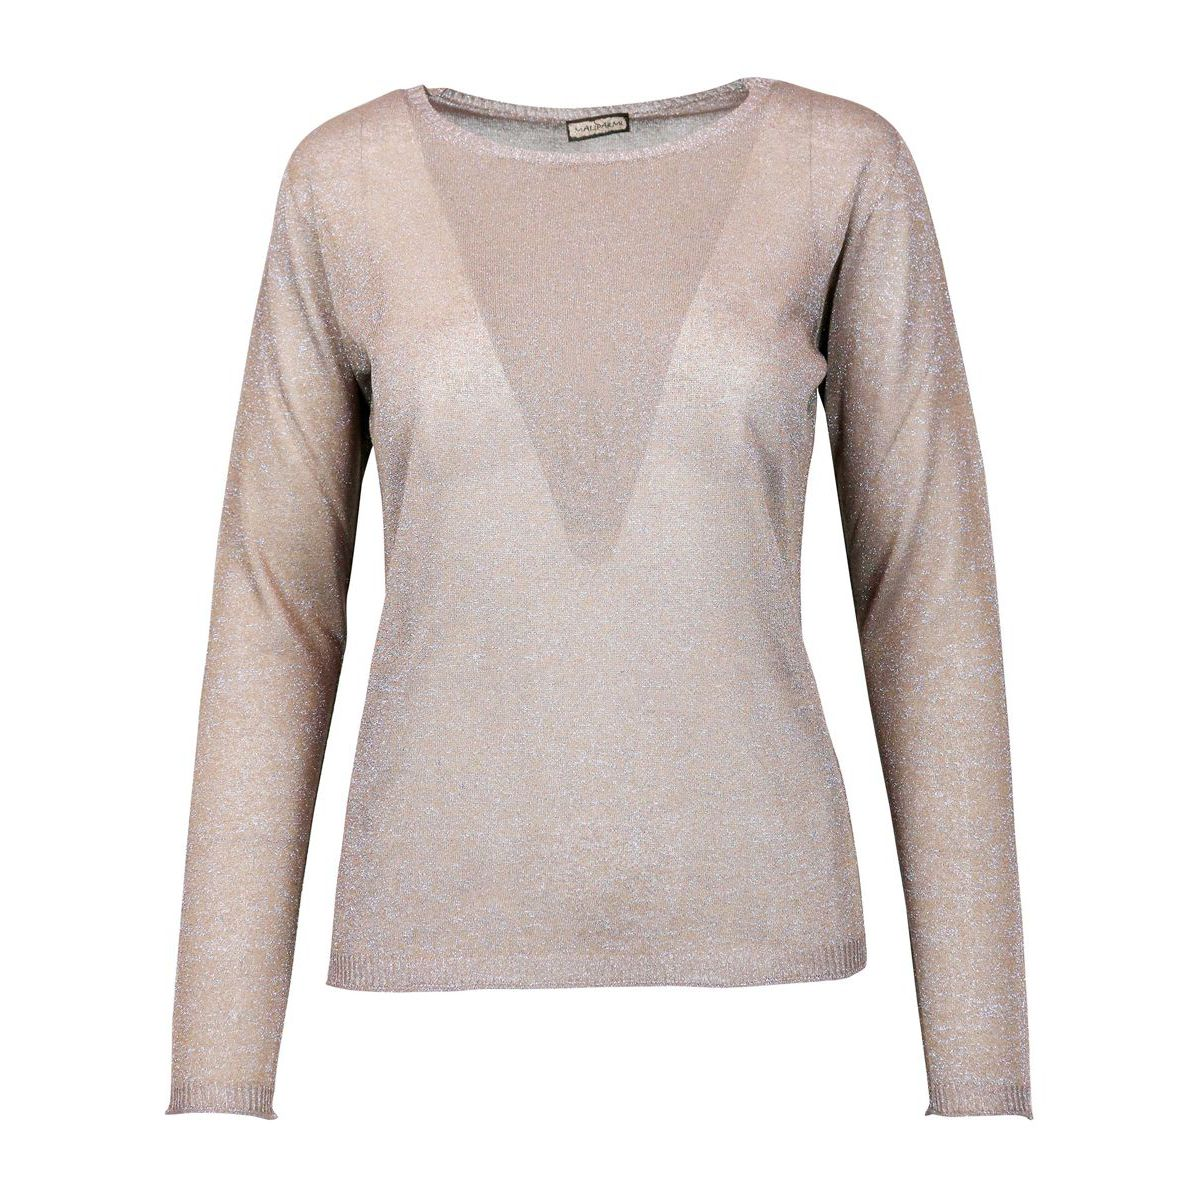 Crew-neck sweater in viscose blend in lurex fabric Jute Maliparmi